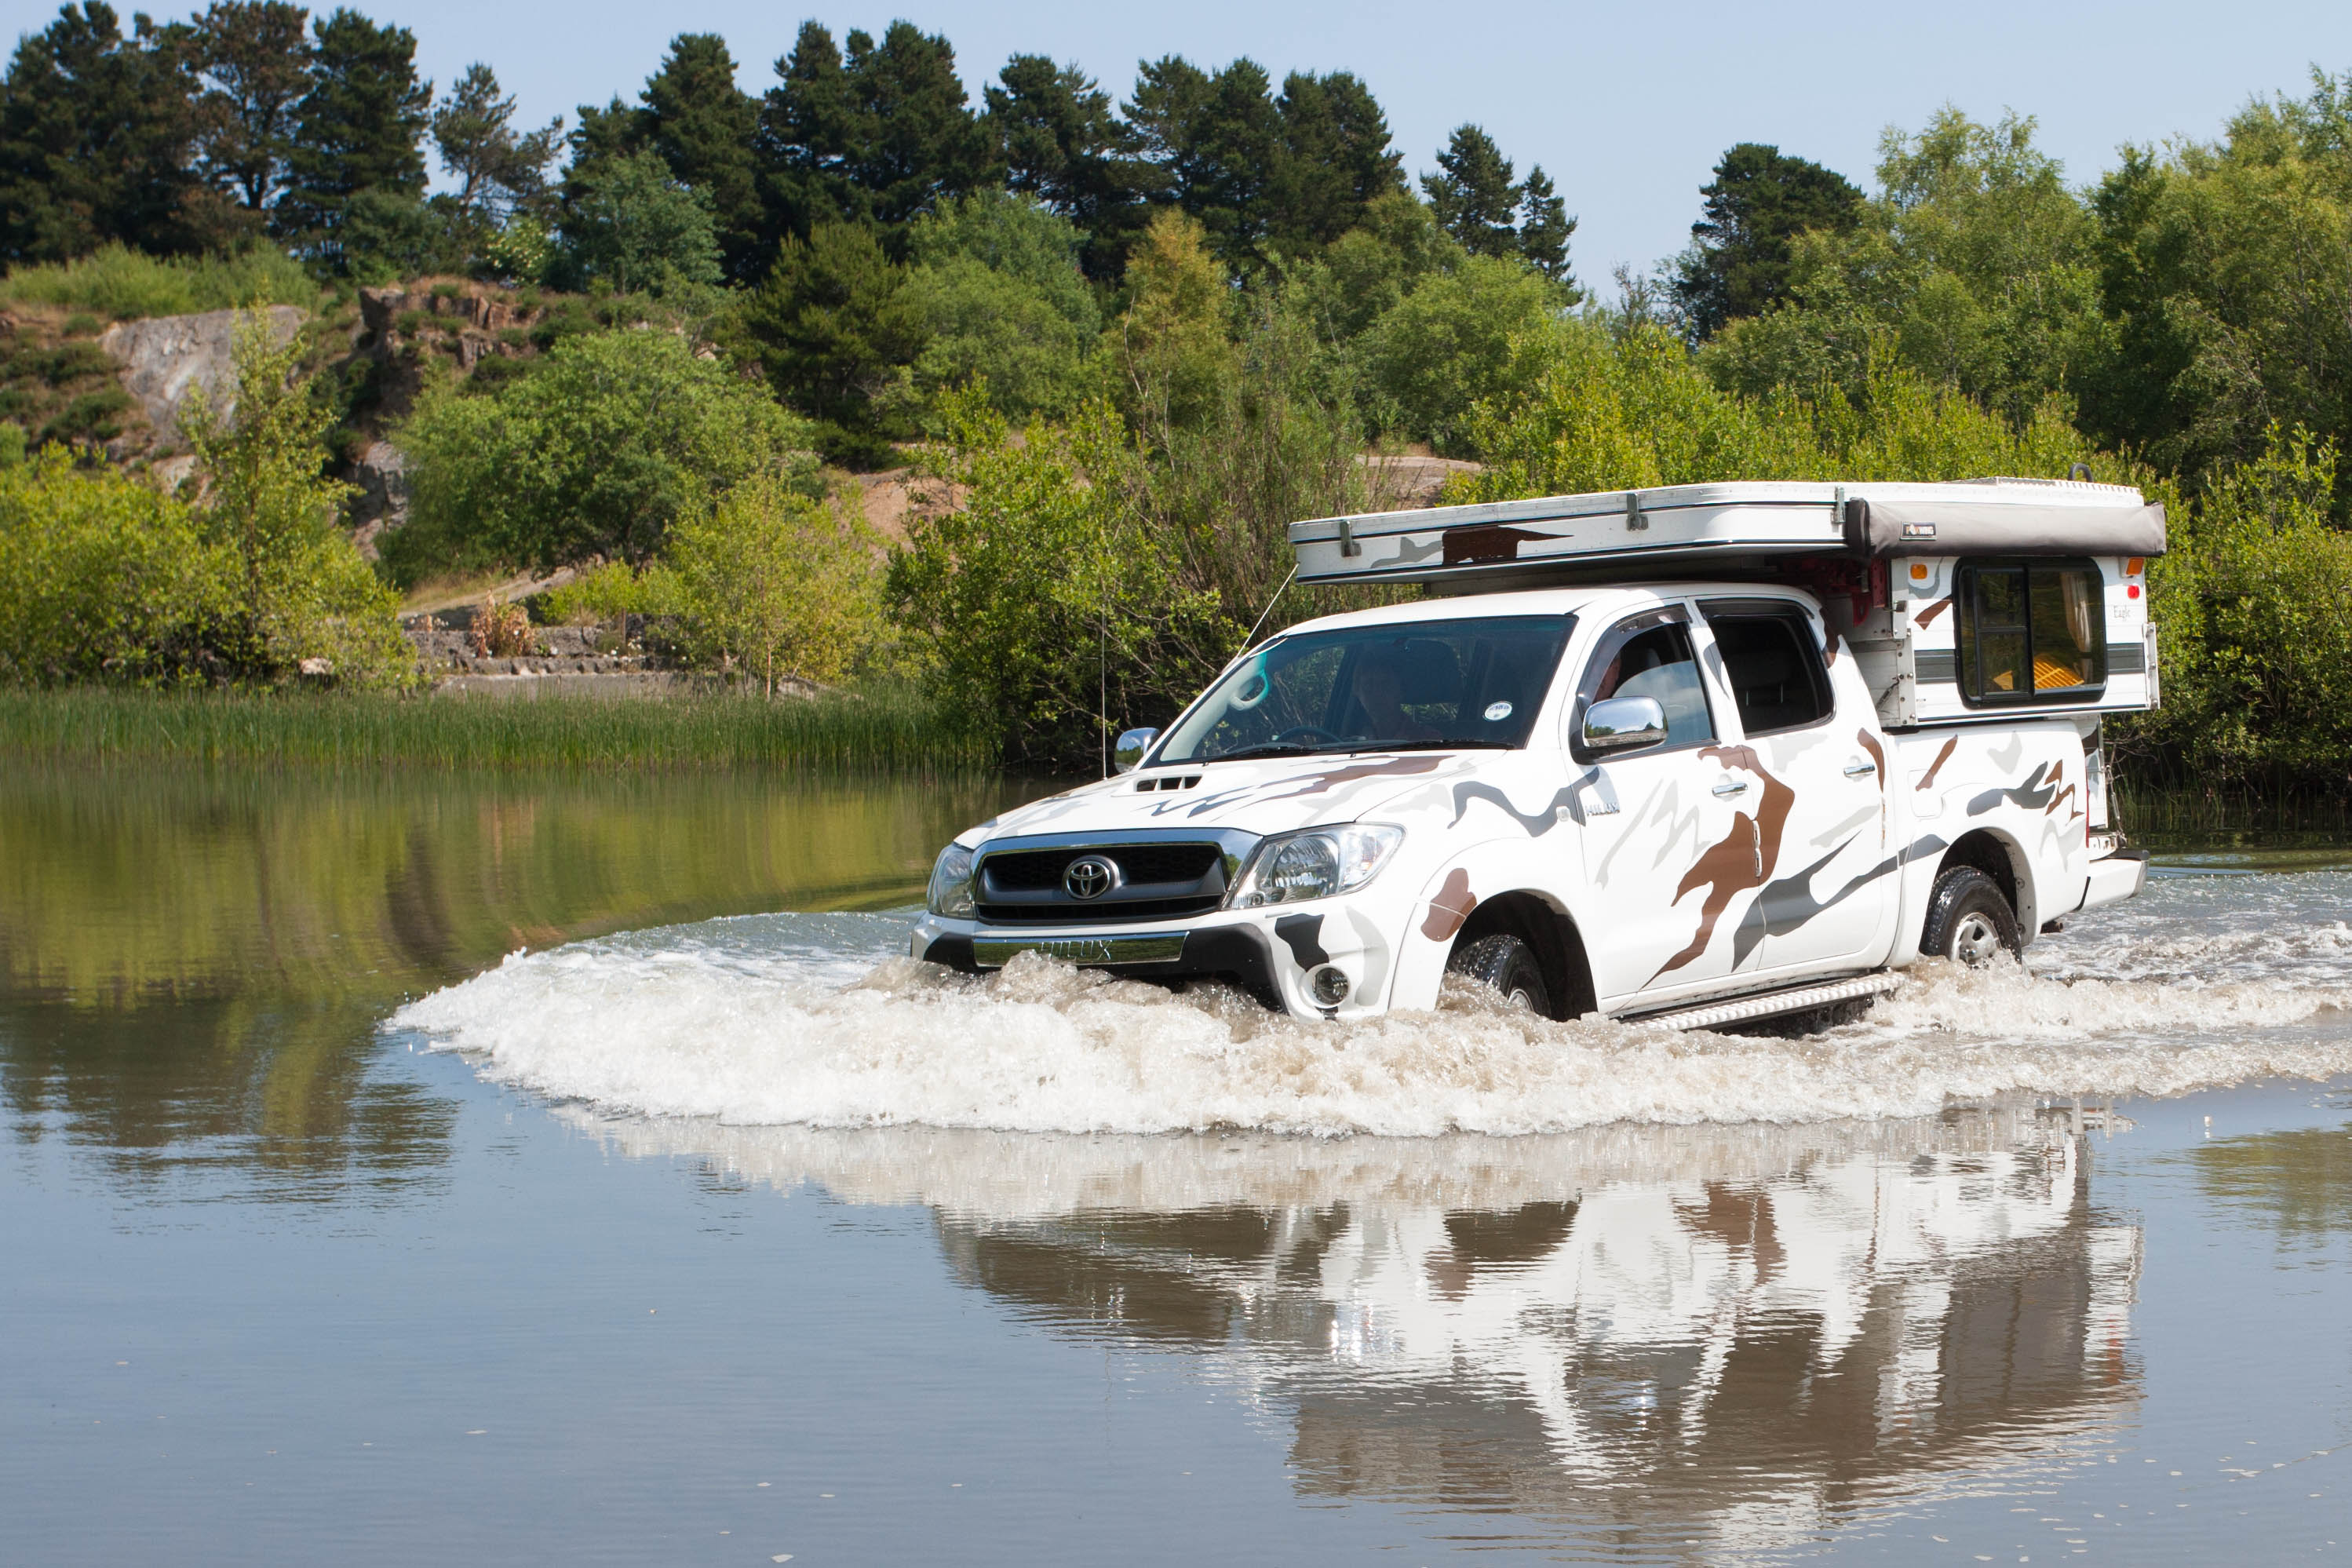 Paula drives through water which is no problem at all to the Toyata Hilux